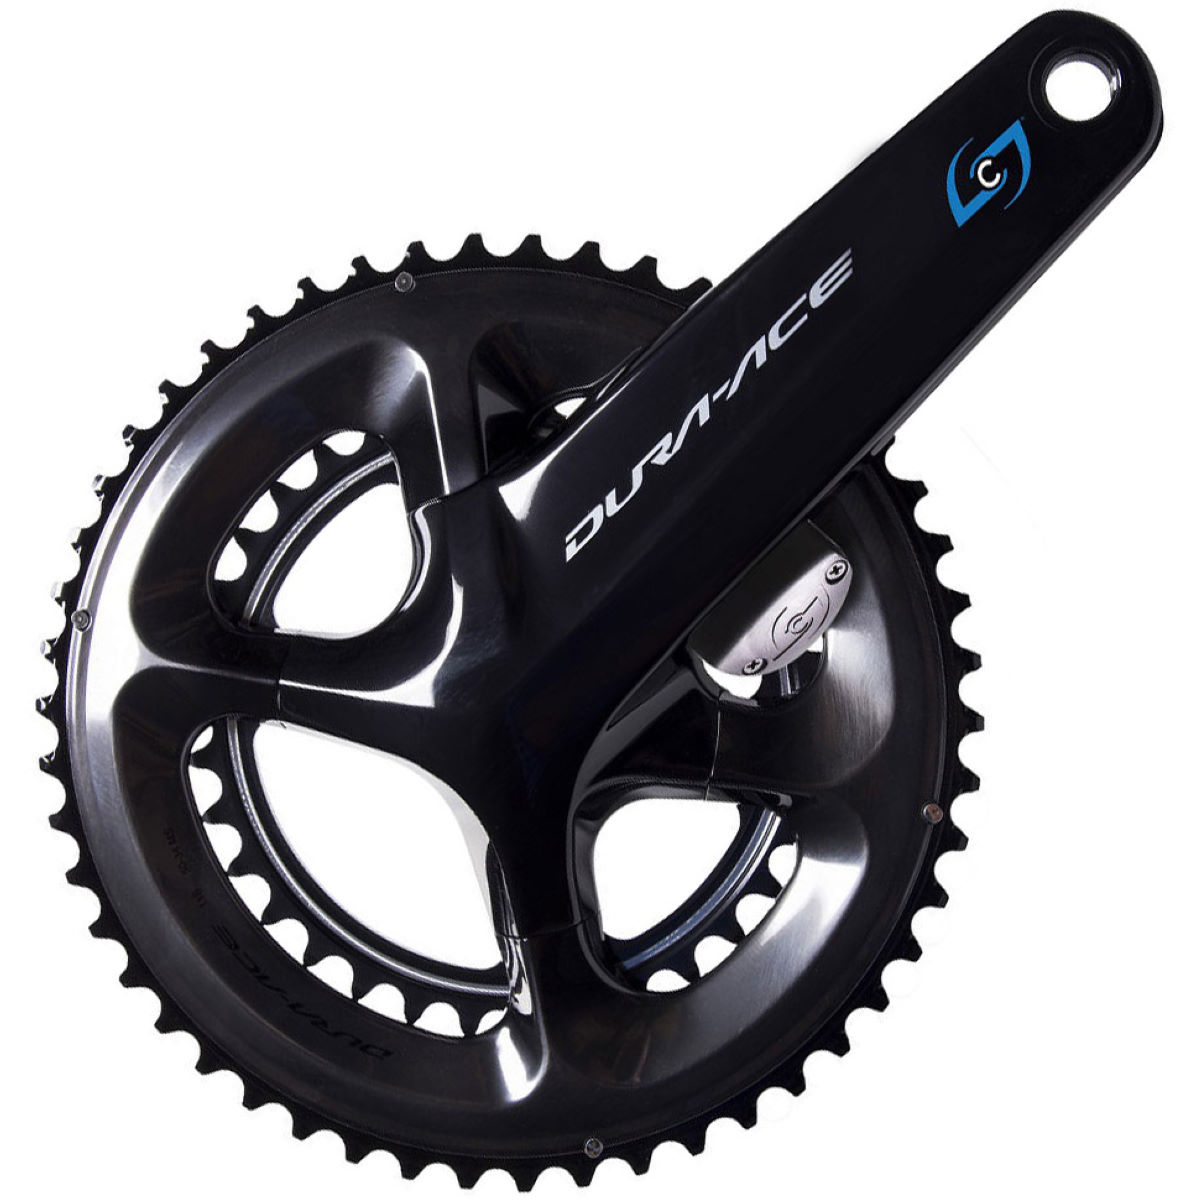 Stages Cycling Power R G3 cw Chainrings Dura-Ace R9100 - Medidores de potencia en juegos de platos y bielas